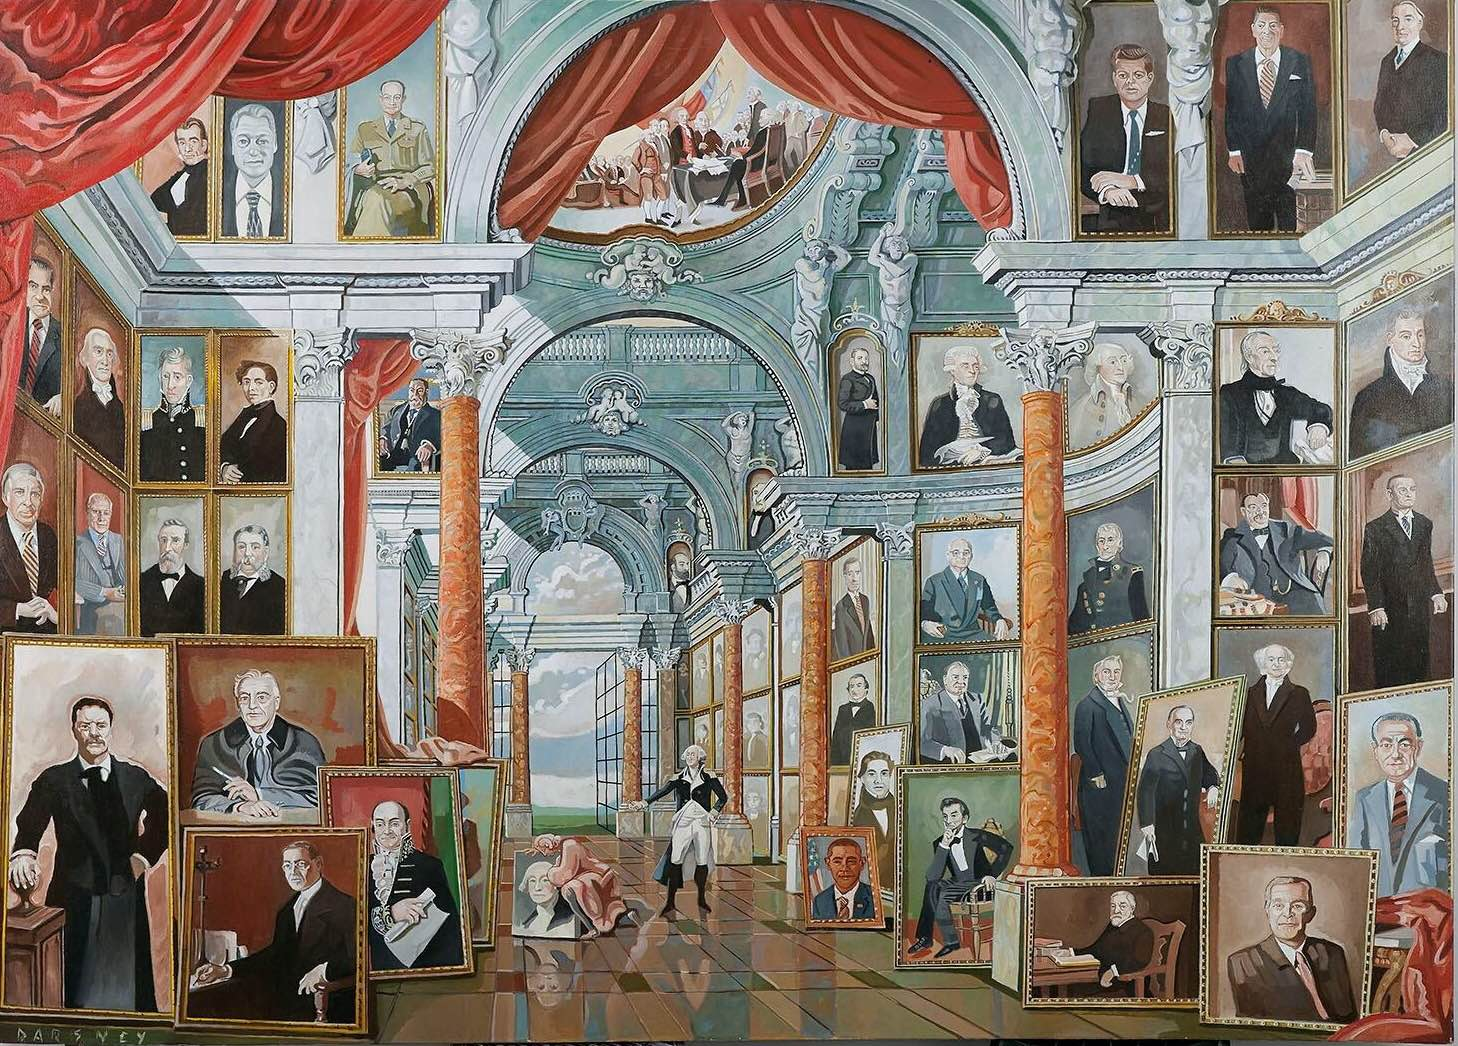 Hall of Presidents 60x80 Oil on canvas